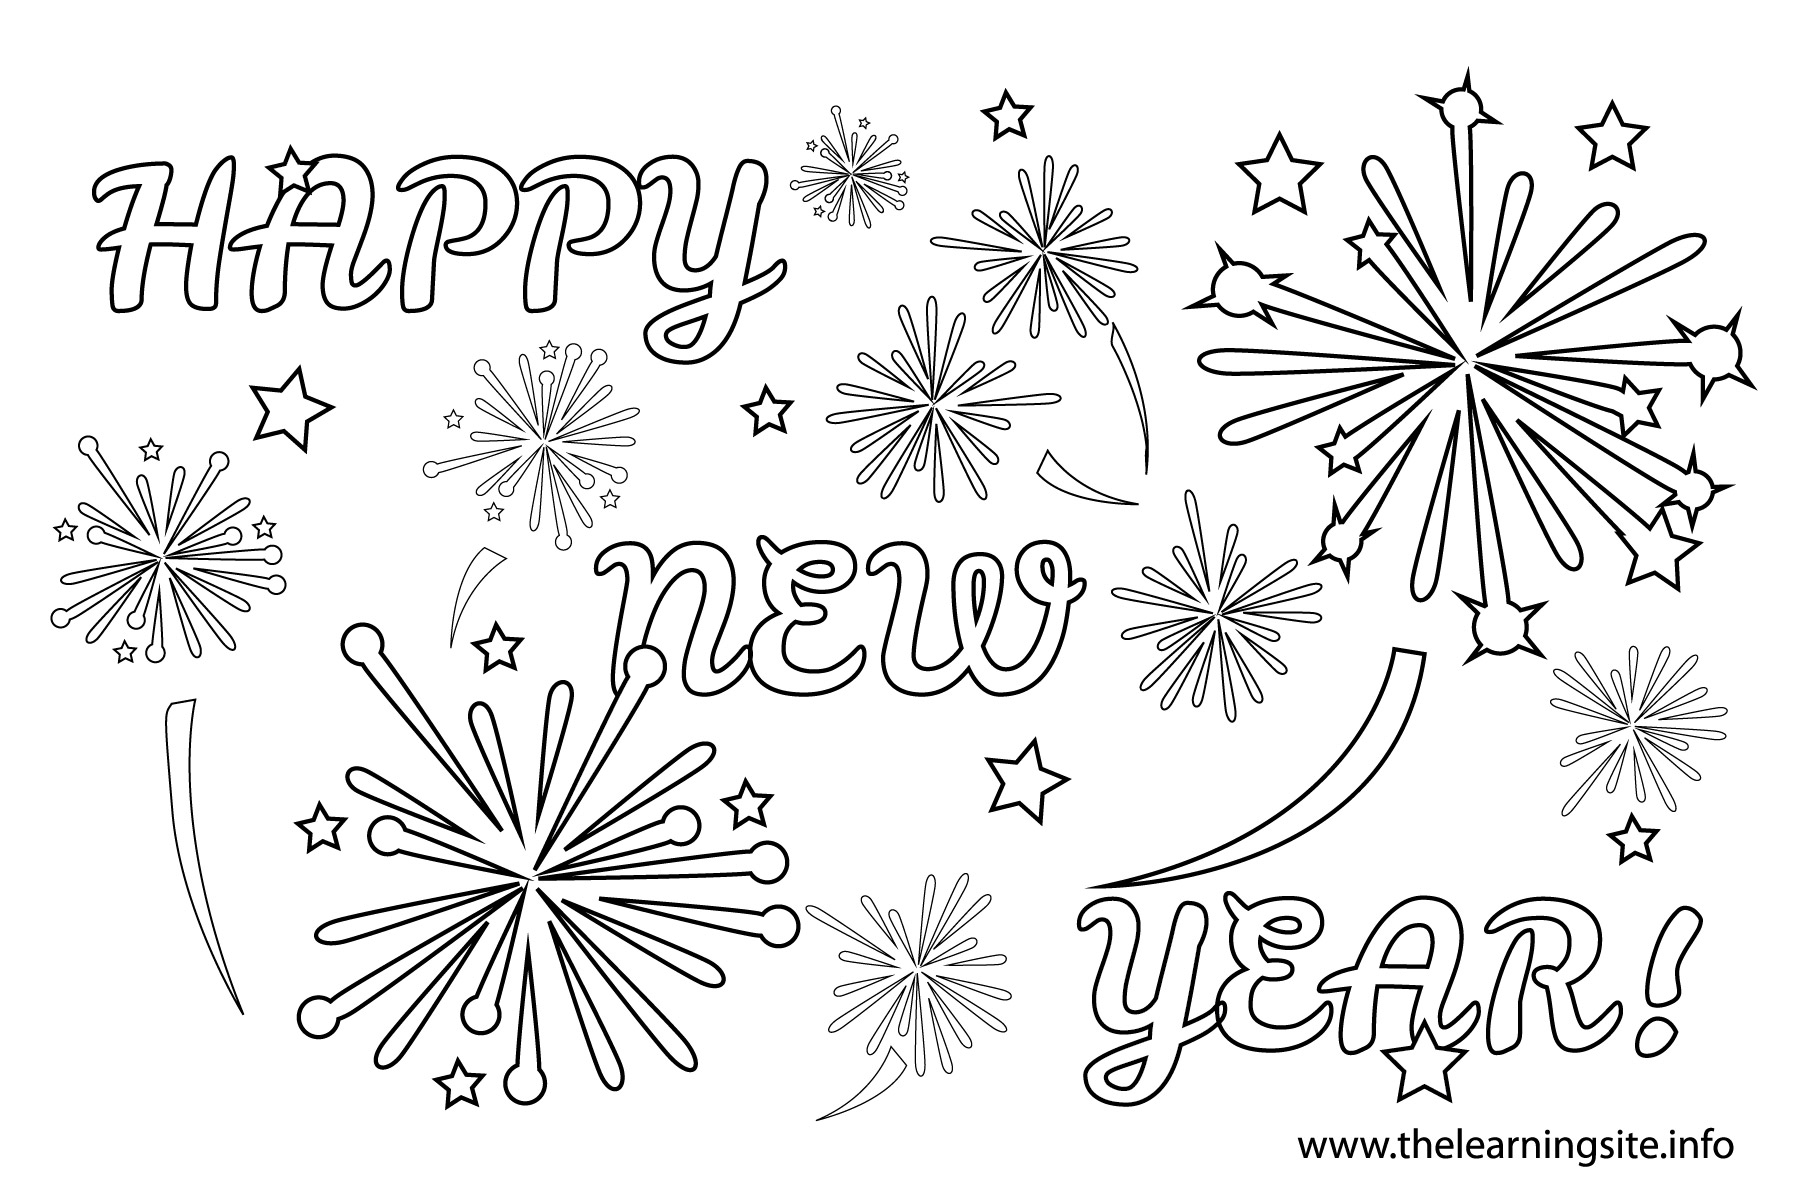 New years fireworks clipart black and white 3 » Clipart Station.